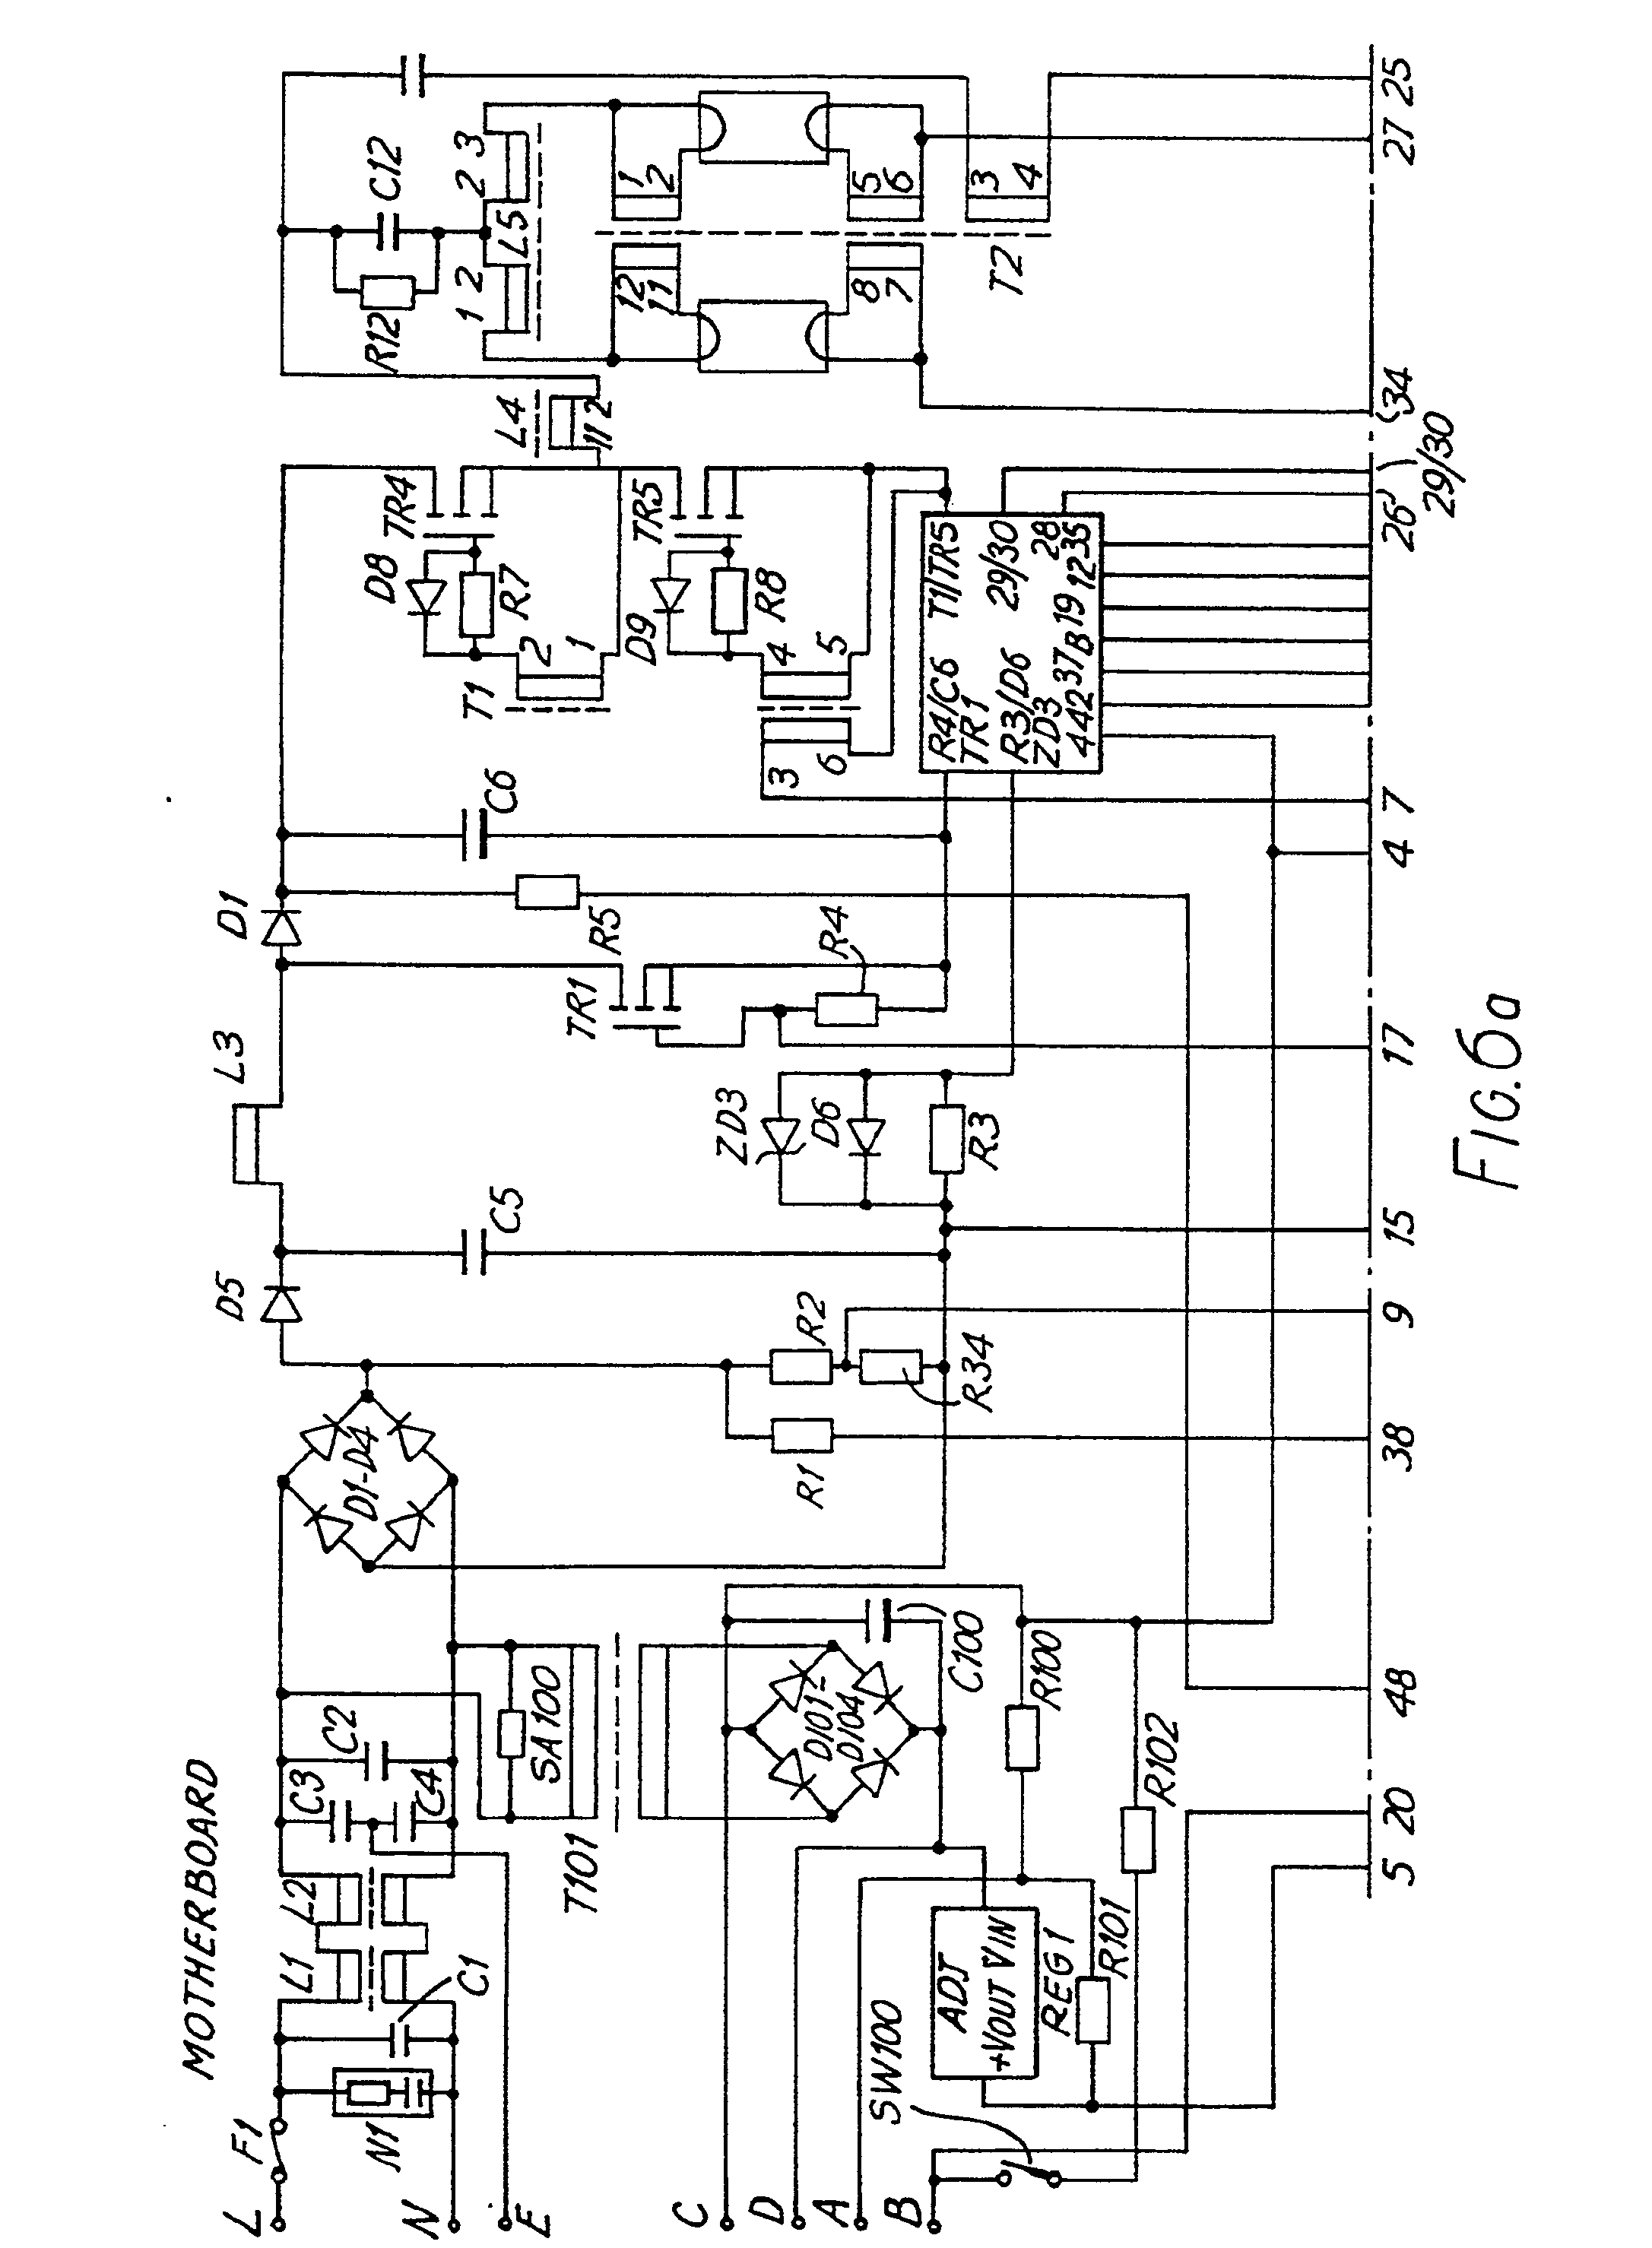 imgf0005 patent ep0447136a2 a method for automatic switching and control yun ba wiring diagram at crackthecode.co